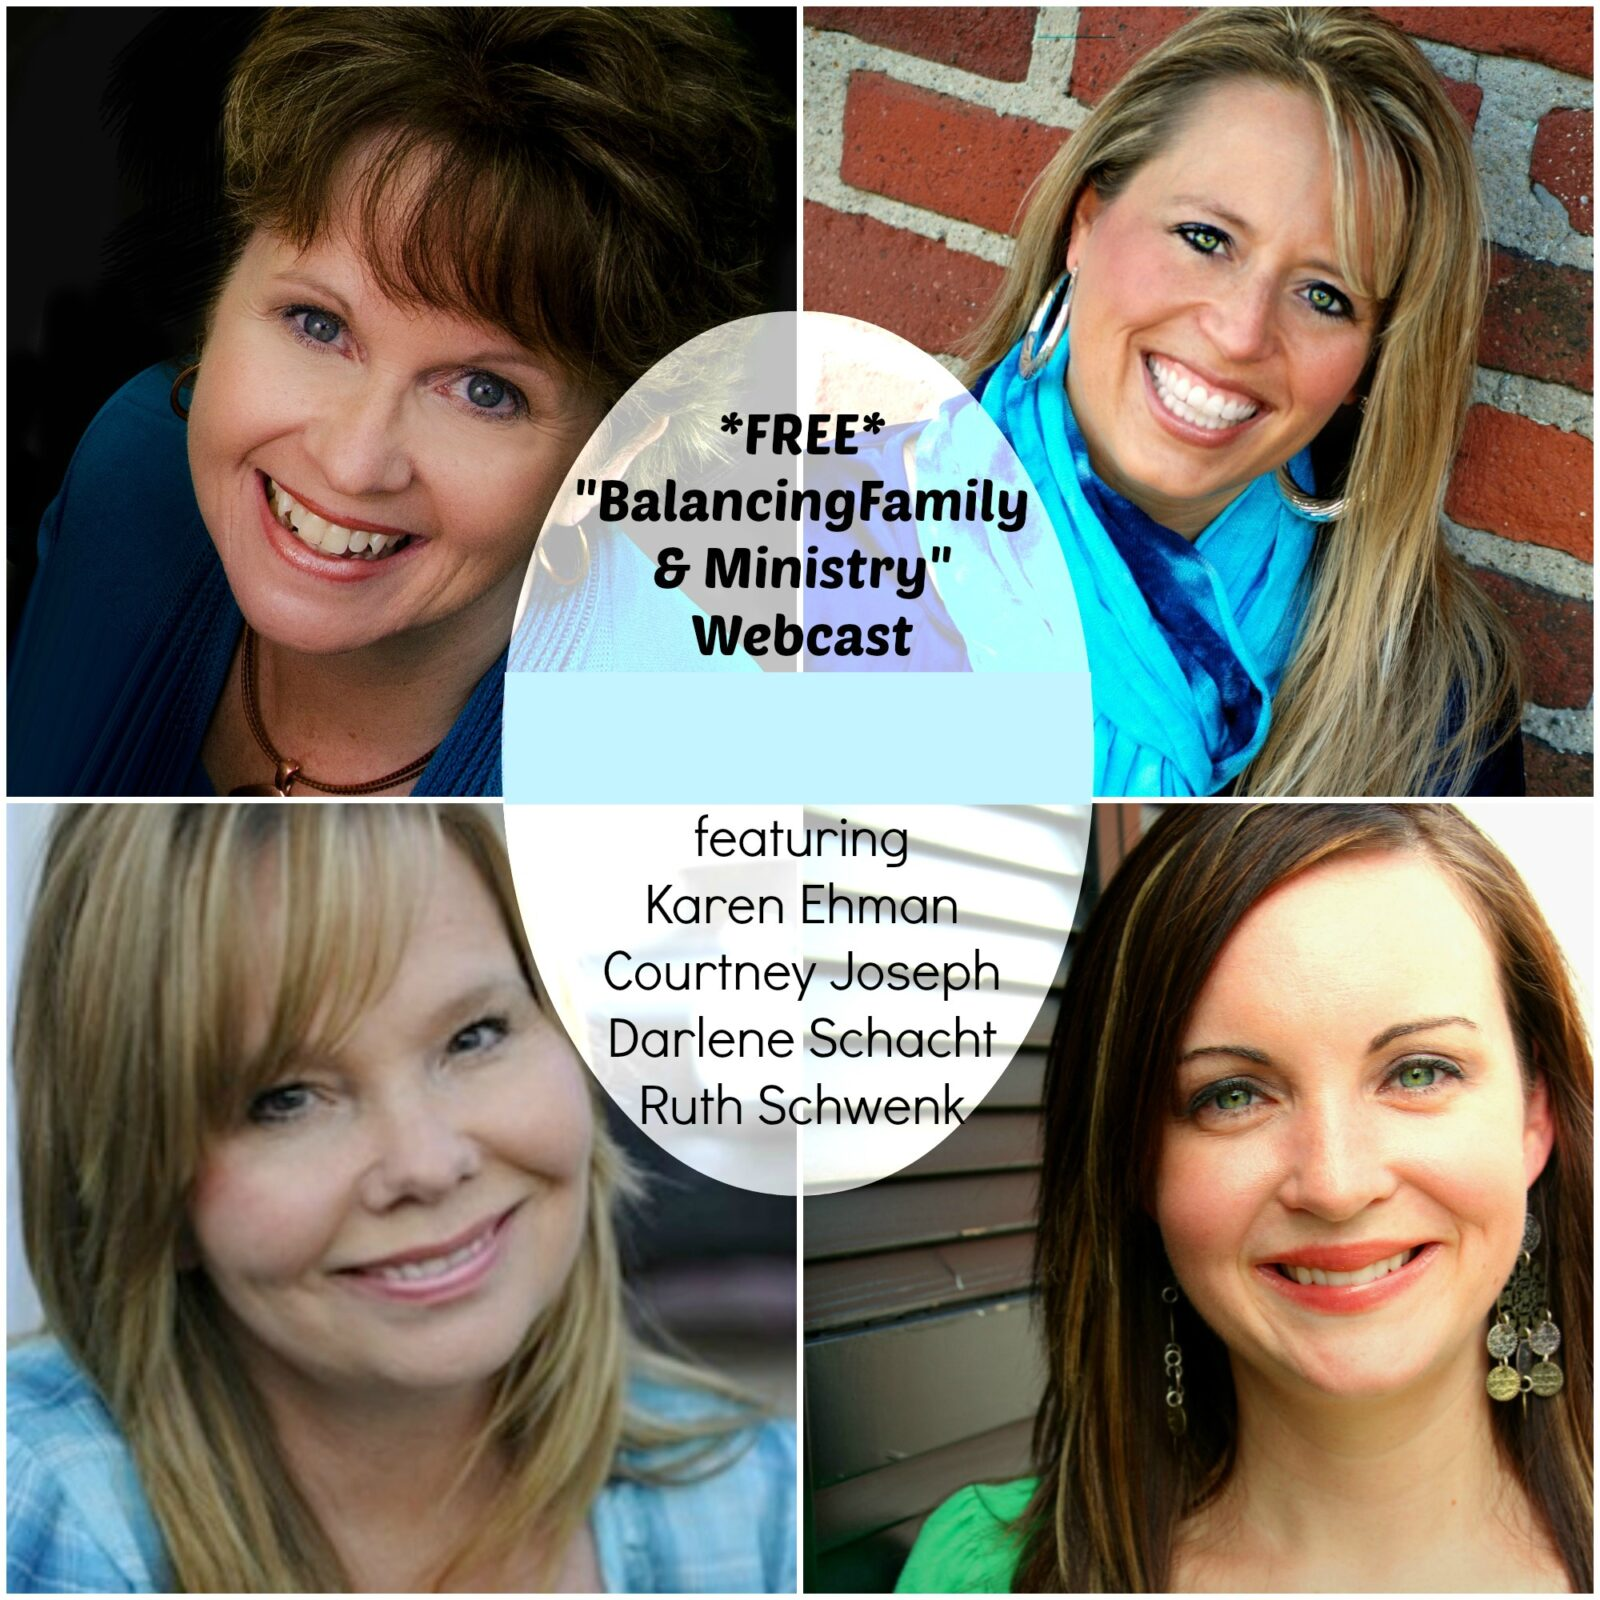 Balancing Family & Ministry Webcast + Everyday Confetti Giveaway!